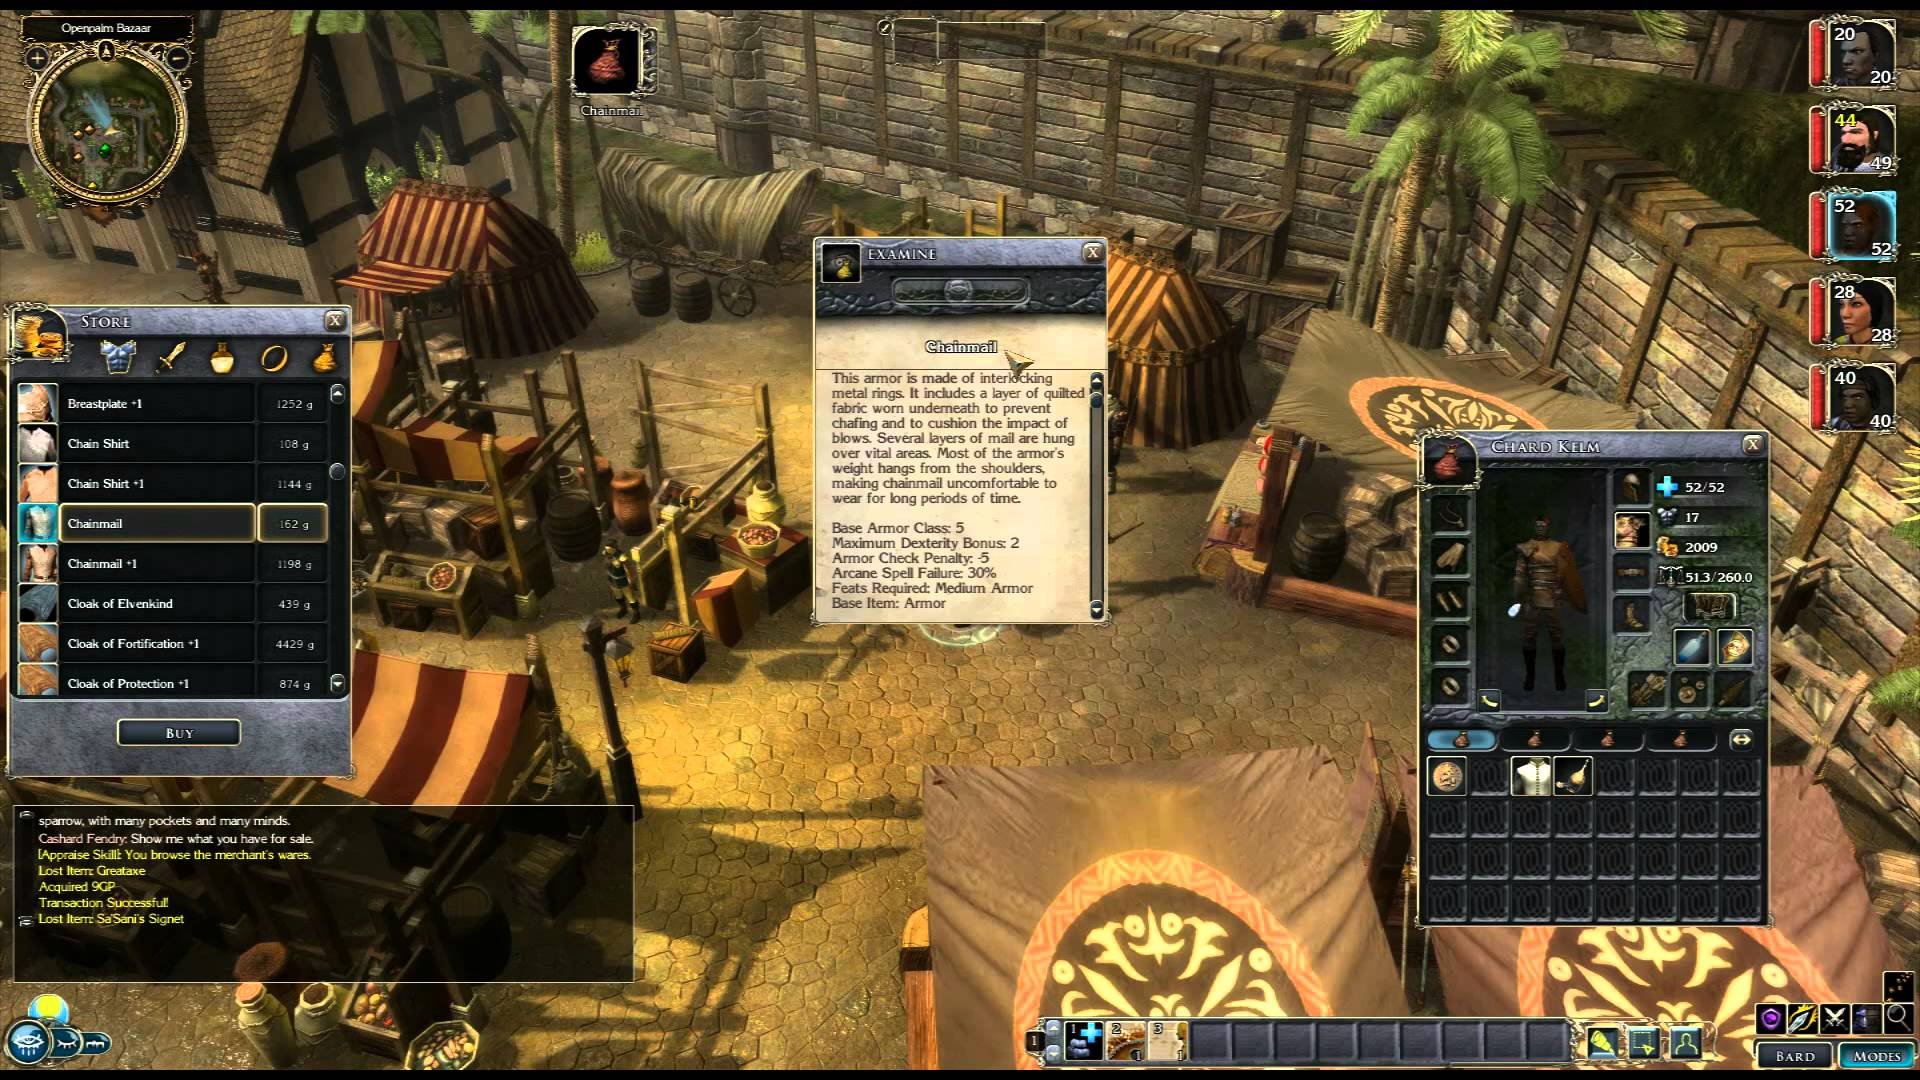 Neverwinter Nights 2: Storm of Zehir.